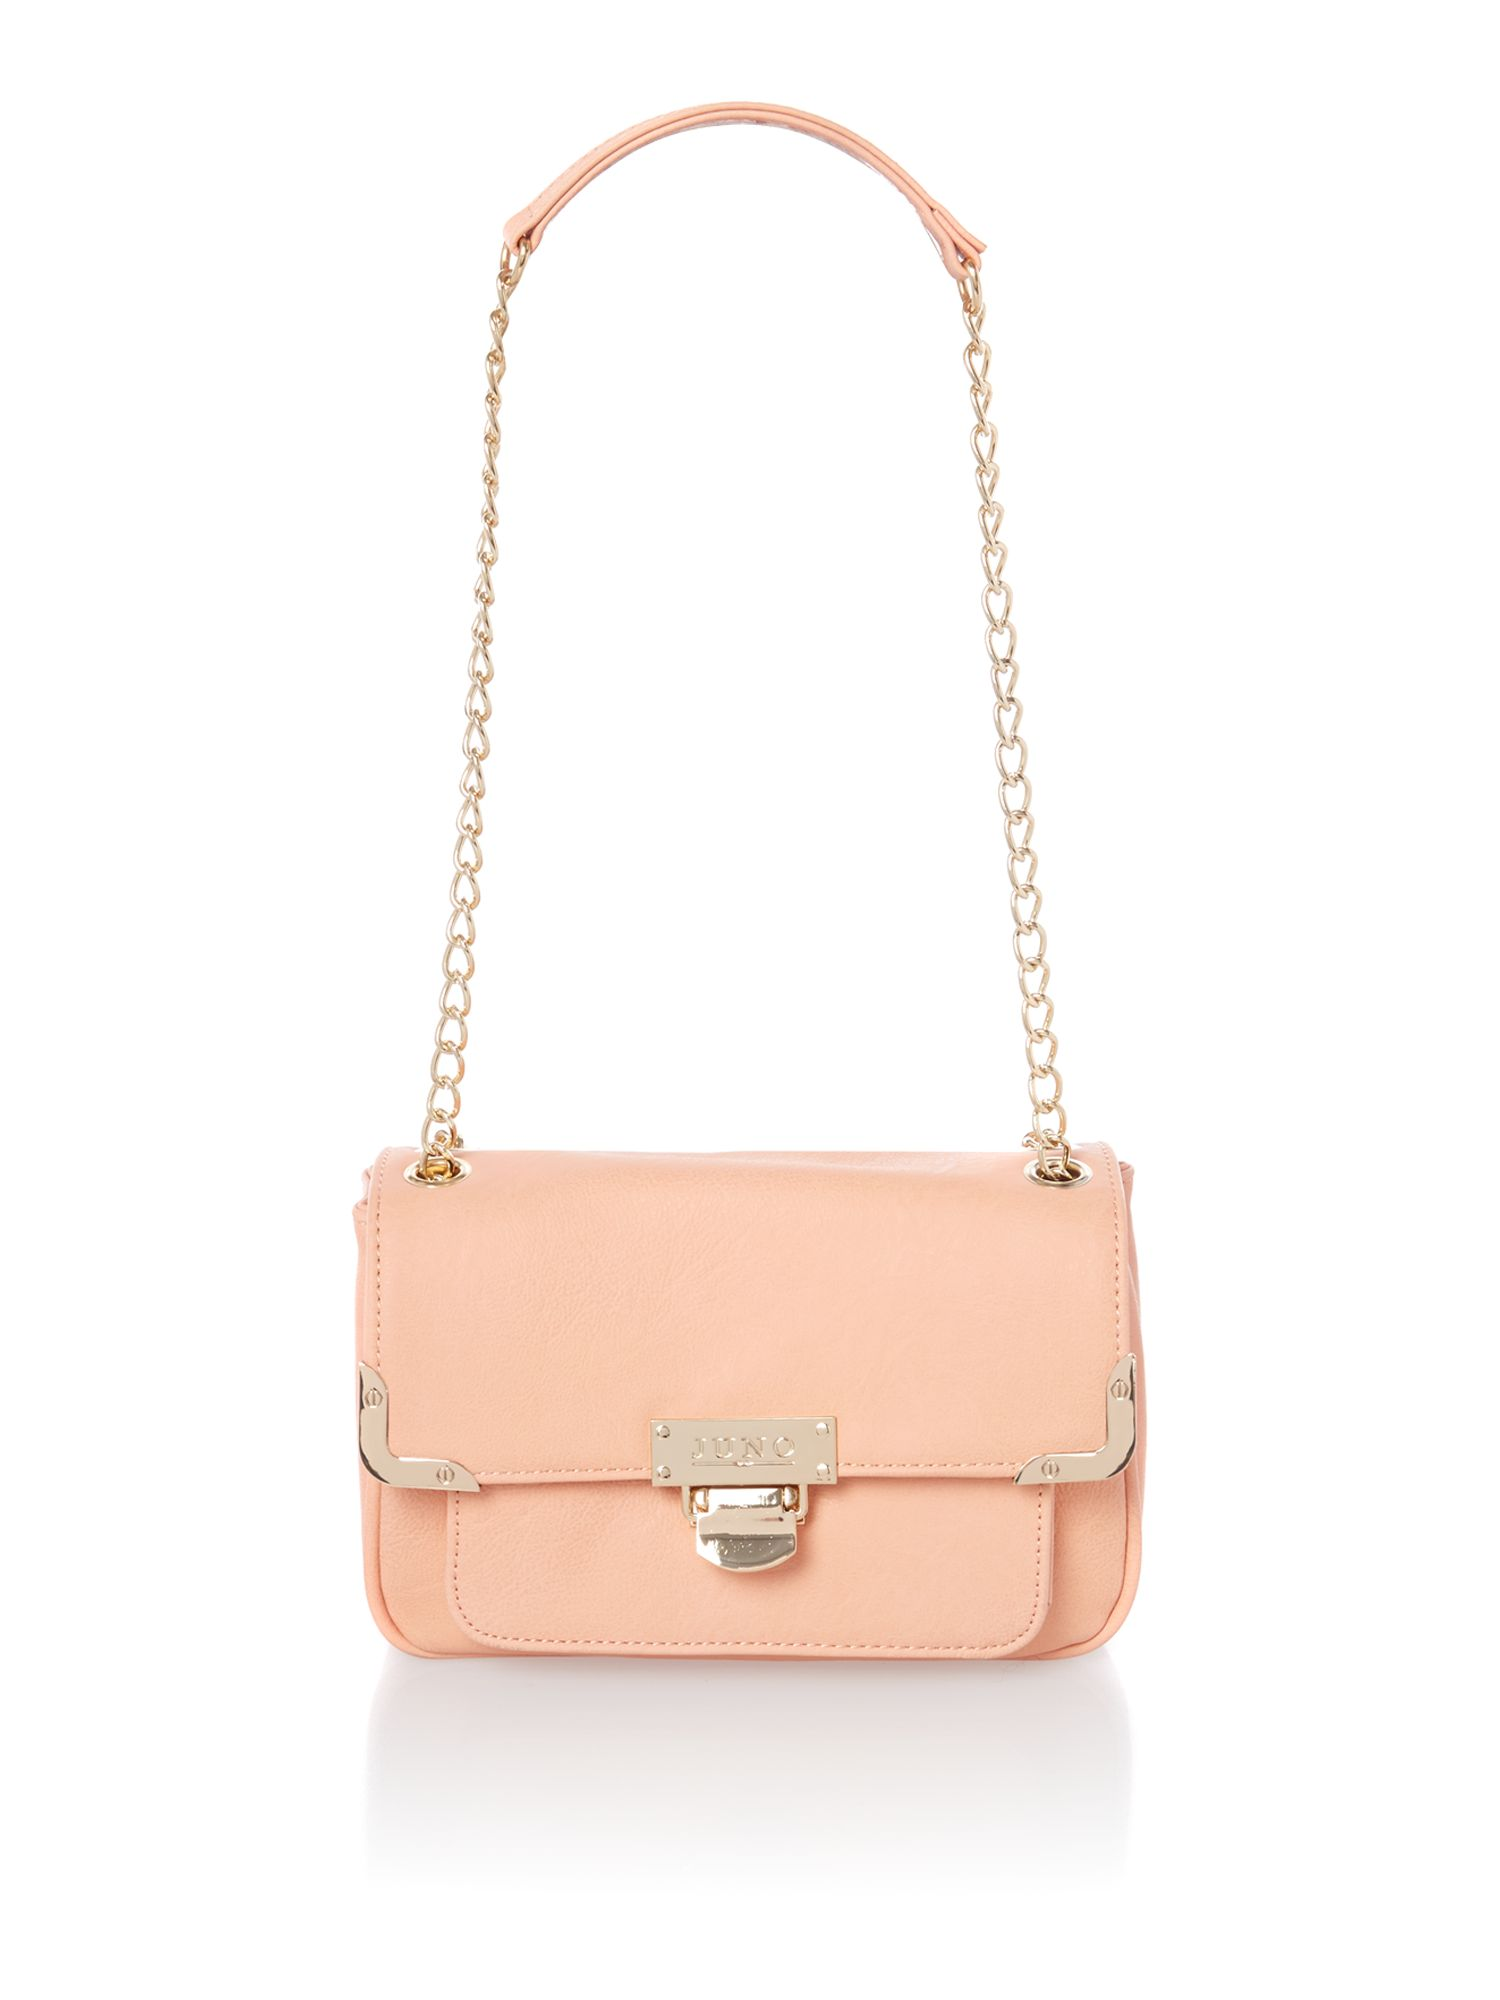 Coral small shoulder bag